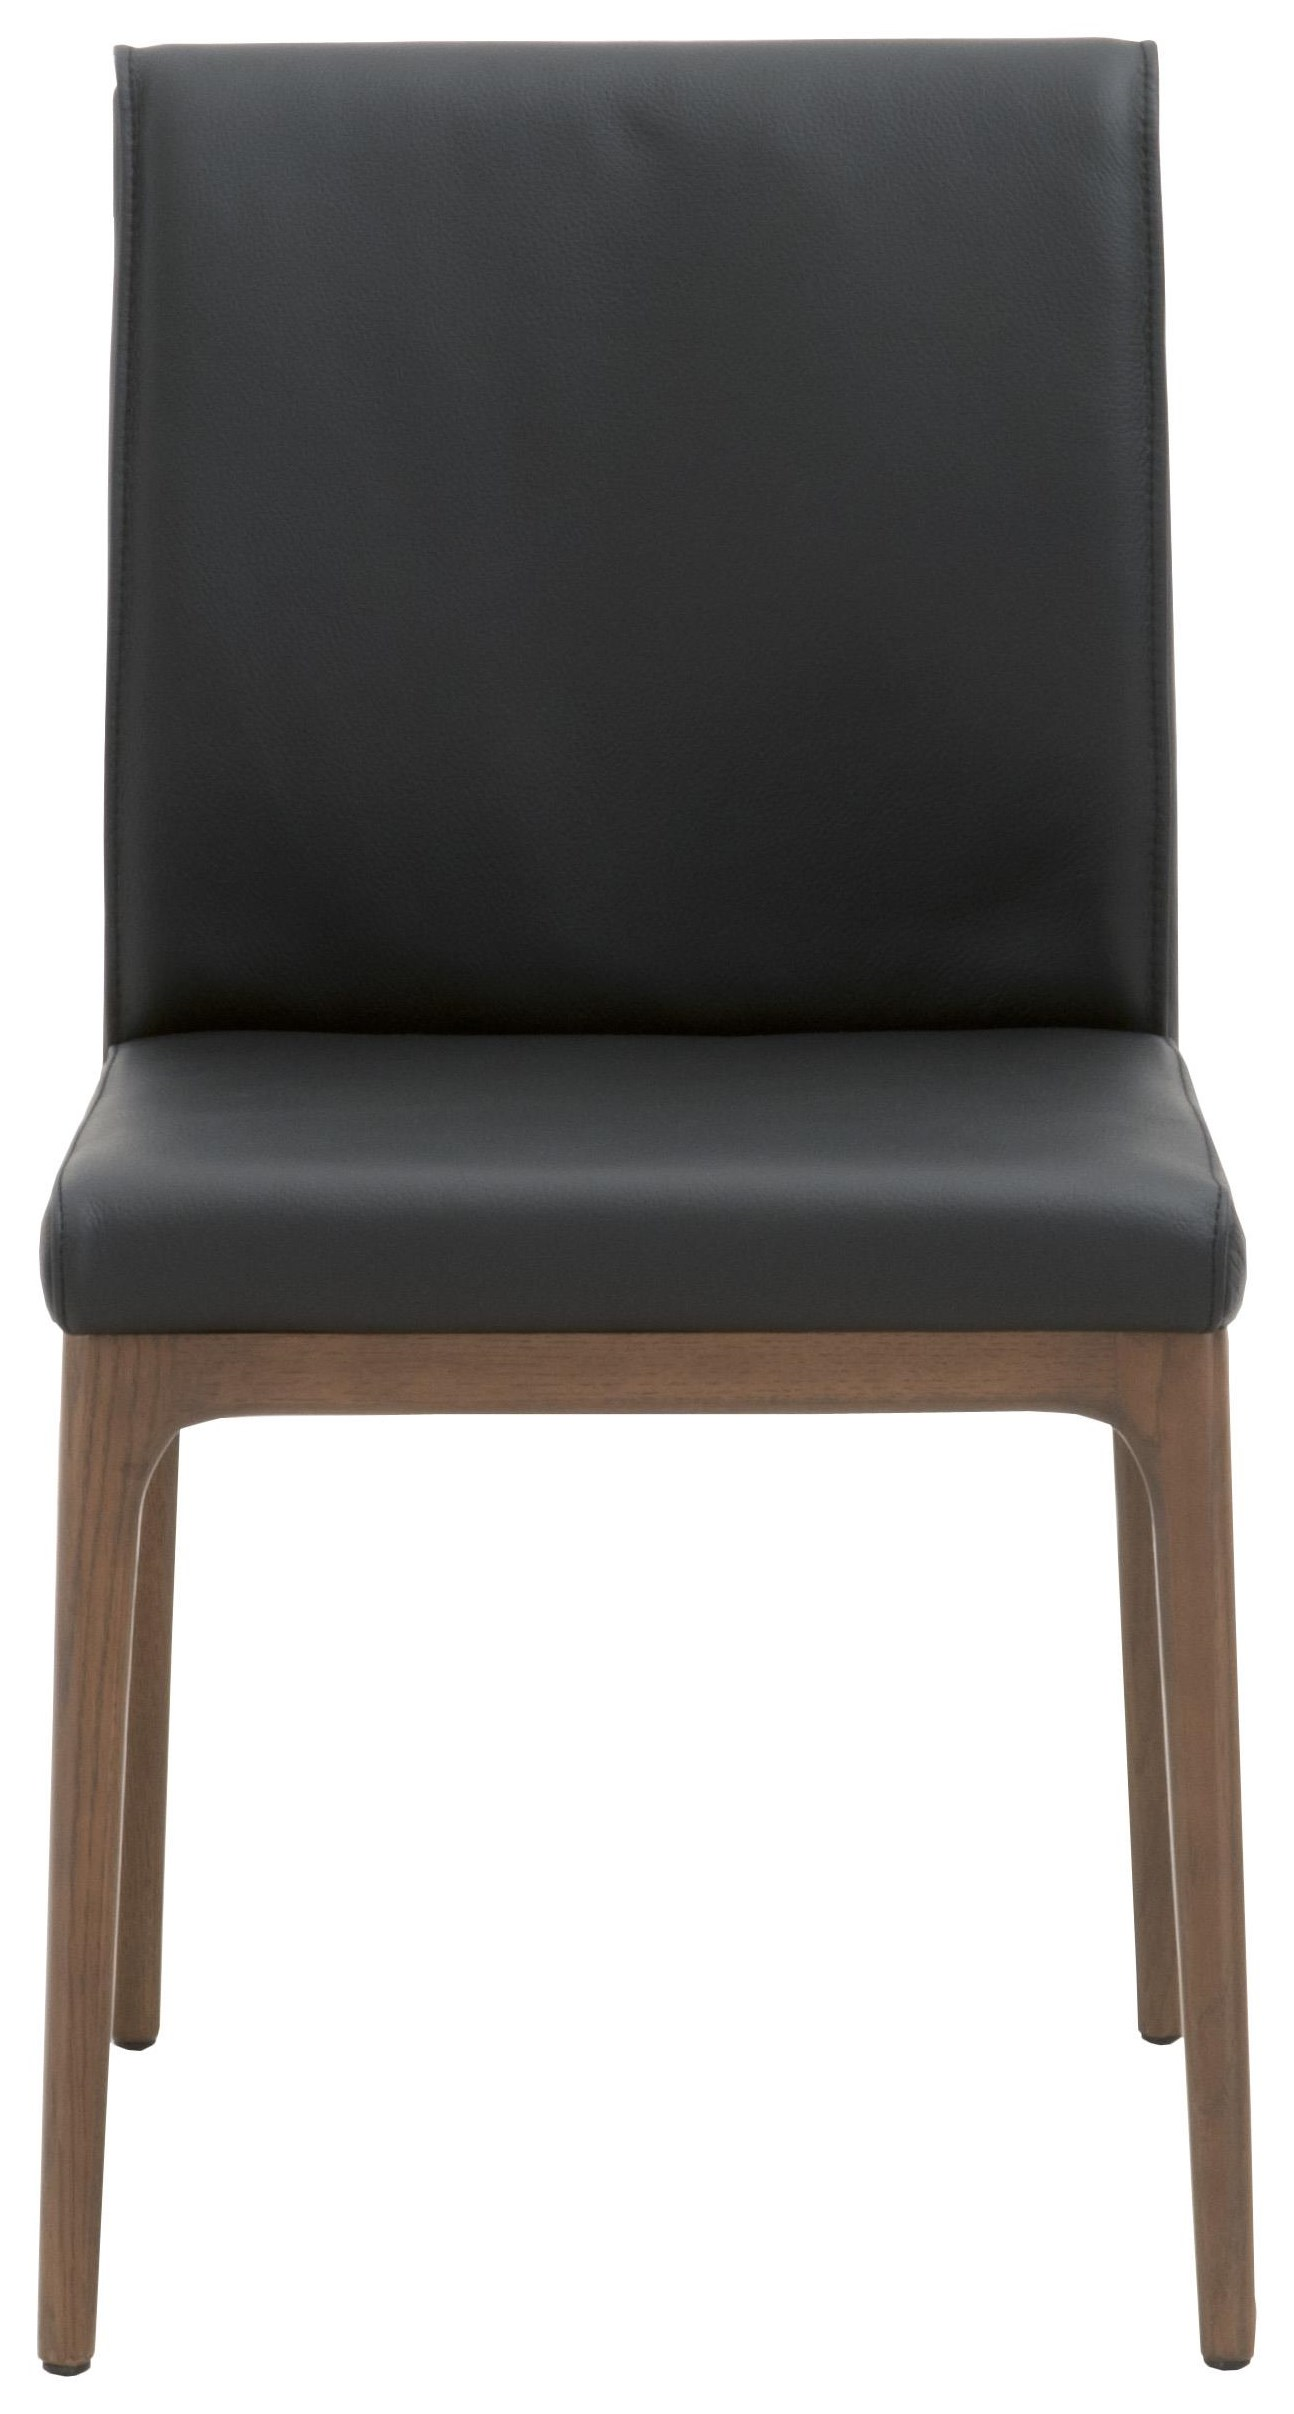 Alex Dining Side Chair by Essentials for Living at C. S. Wo & Sons Hawaii